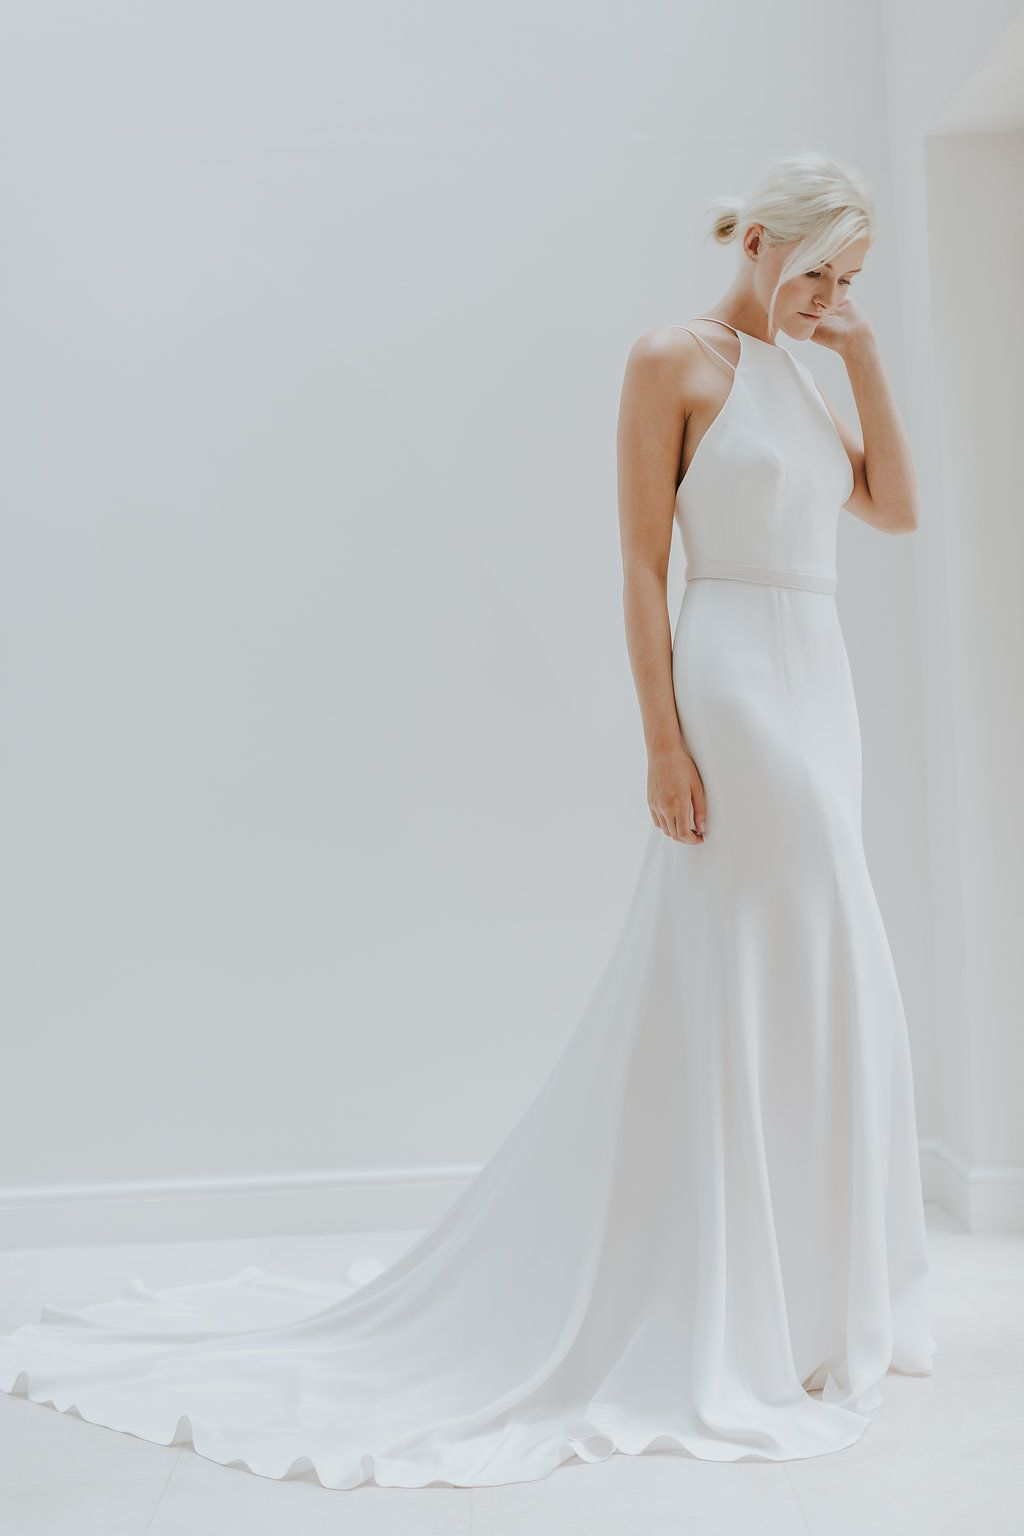 Charlotte Simpson Bridal | Pinterest | Crepe wedding dress, Bridal ...